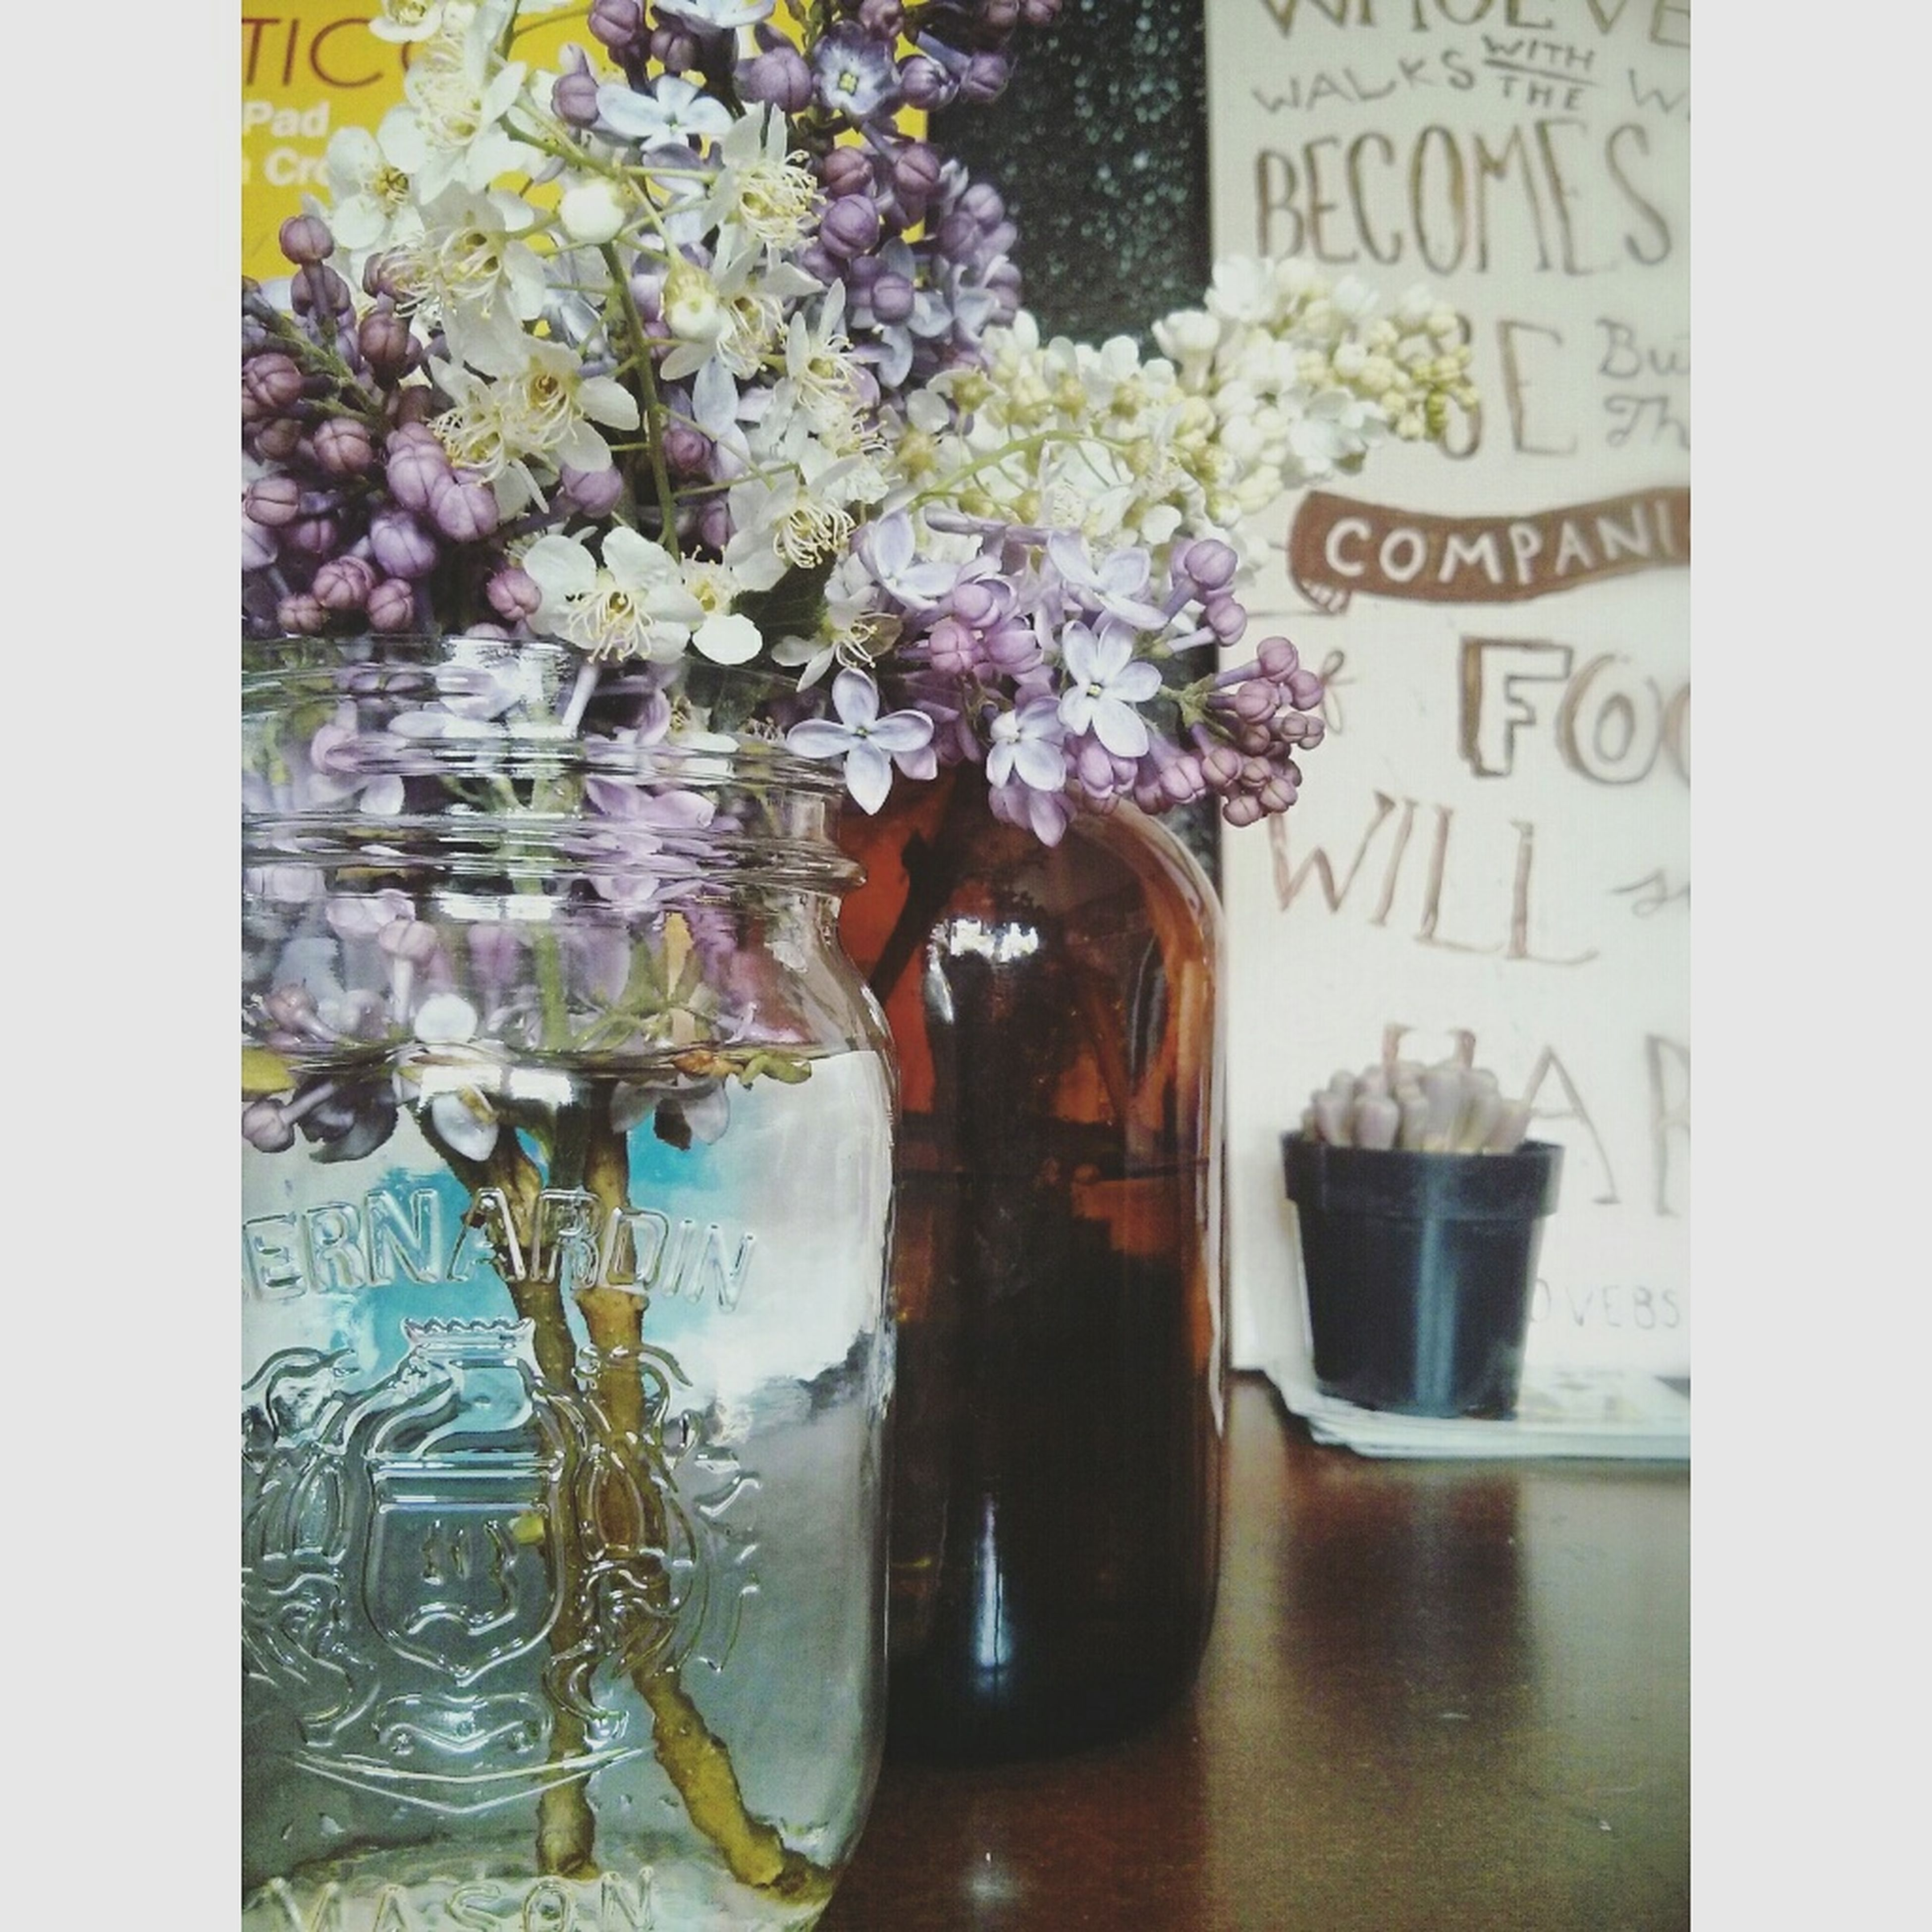 transfer print, auto post production filter, indoors, flower, text, table, freshness, western script, still life, close-up, no people, potted plant, vase, day, communication, glass - material, plant, wall, jar, high angle view